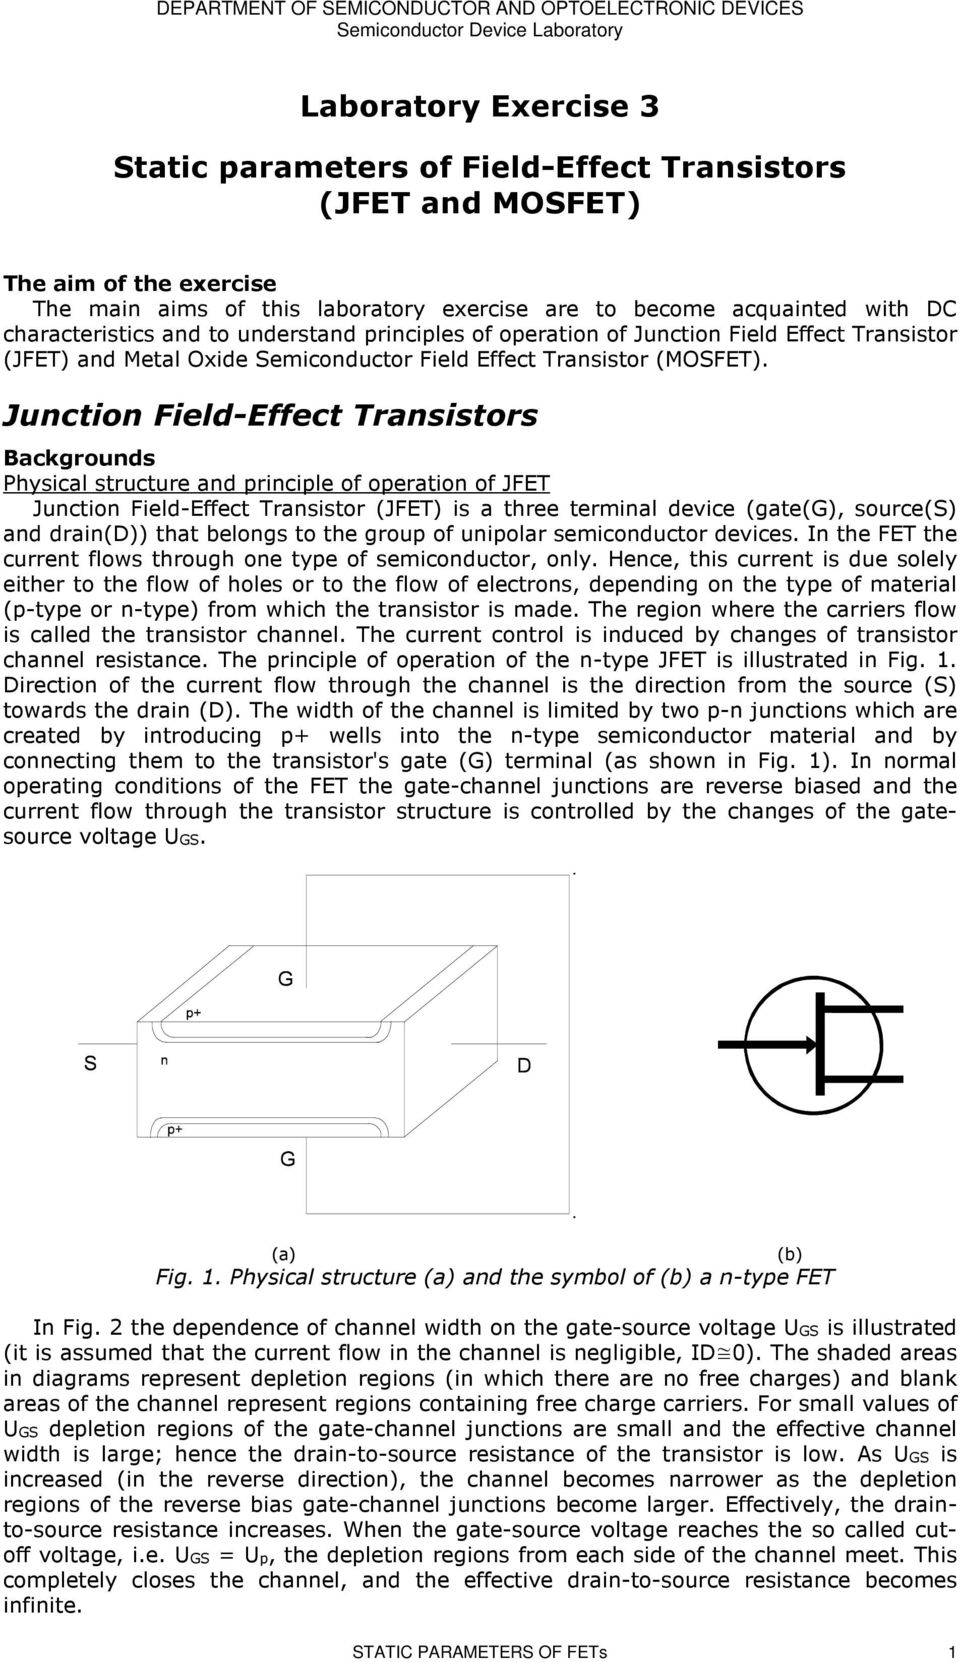 Laboratory Exercise 3 Static Parameters Of Field Effect Transistors How To Test Fetsjfet And Mosfet Circuit Wiring Diagrams Junction Backgrounds Physical Structure Principle Operation Jfet